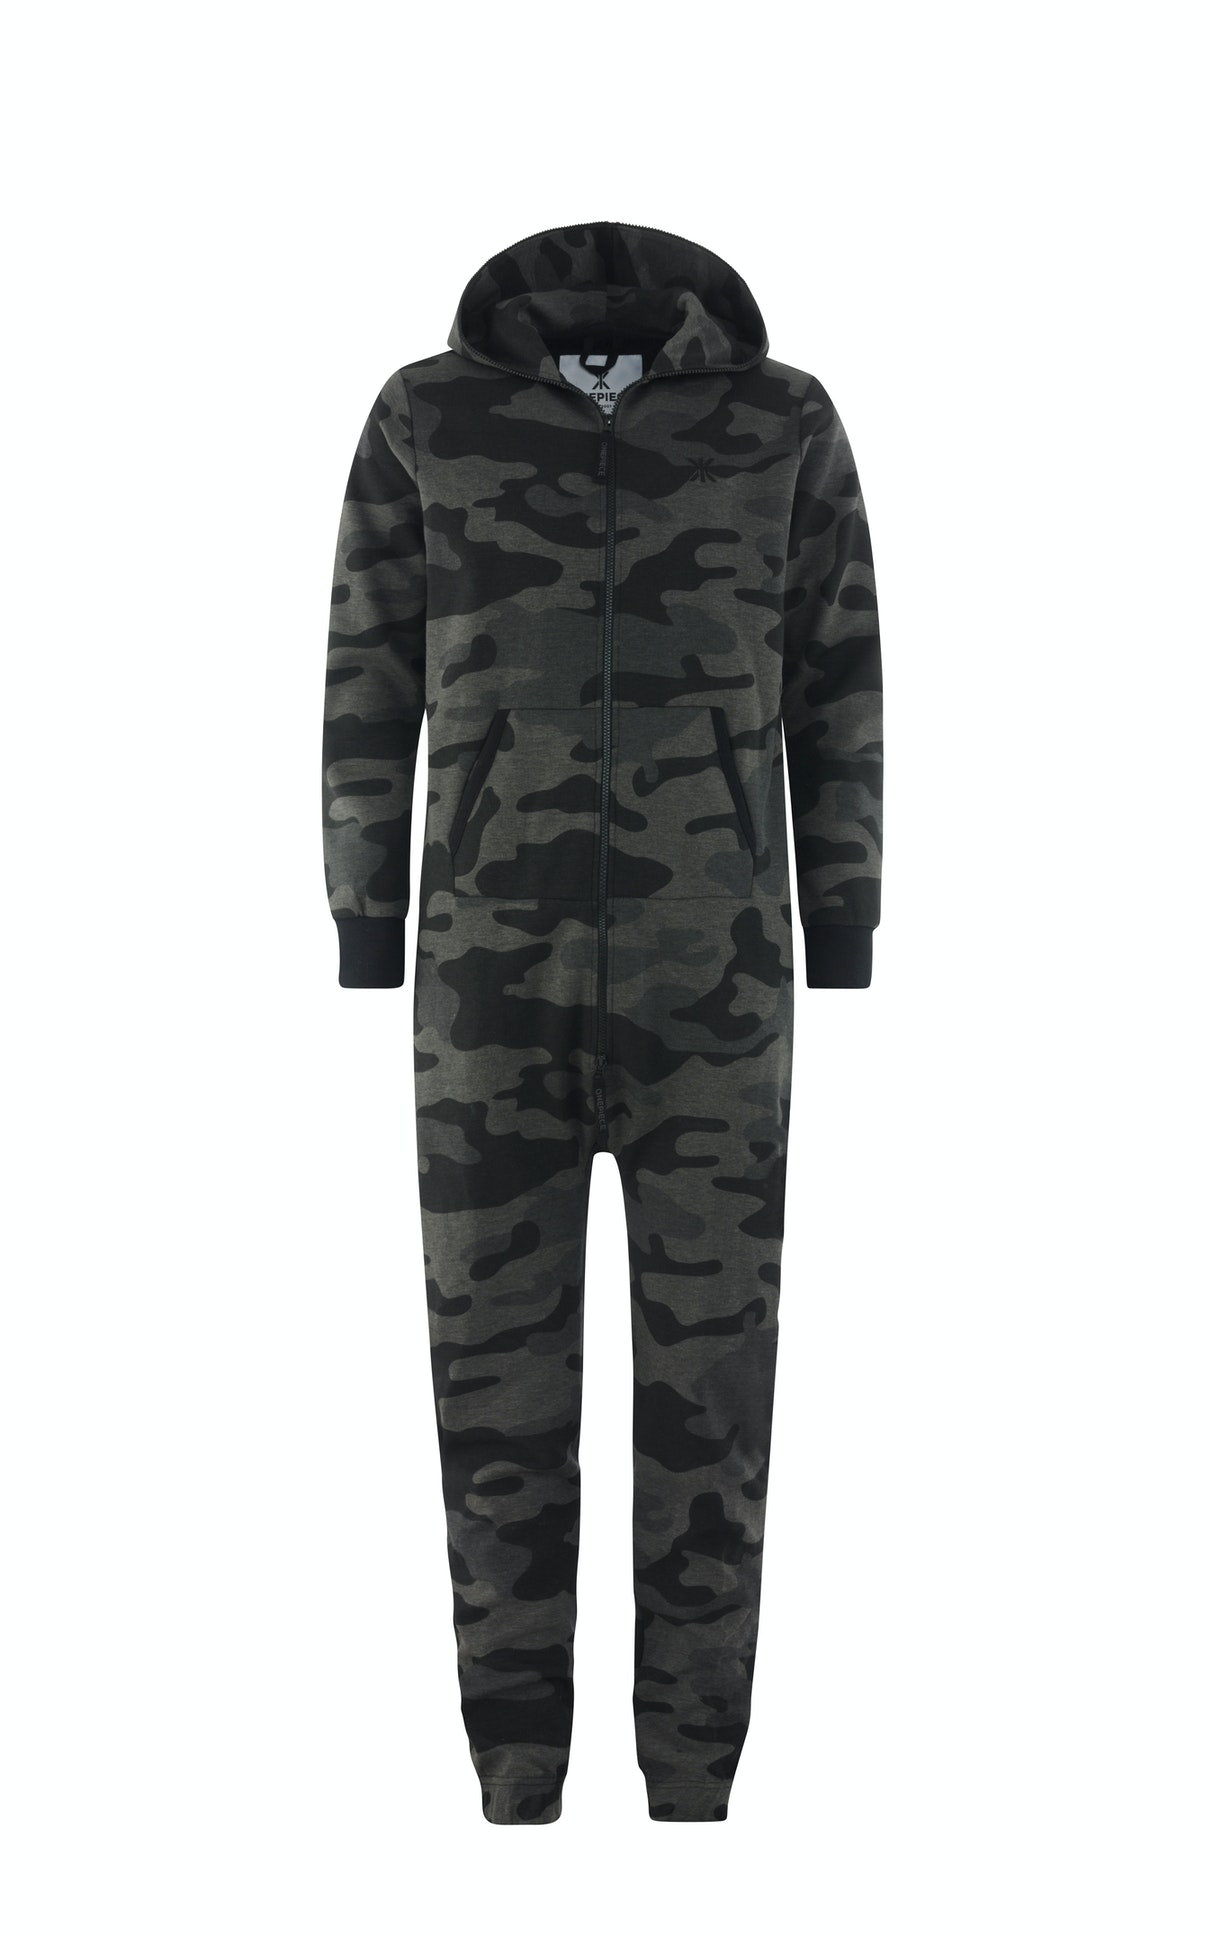 Camouflage Jumpsuit Black We've taken our classic Camouflage Jumpsuit and made it darker. Way darker. Perfect for late night Navy Seals activities...